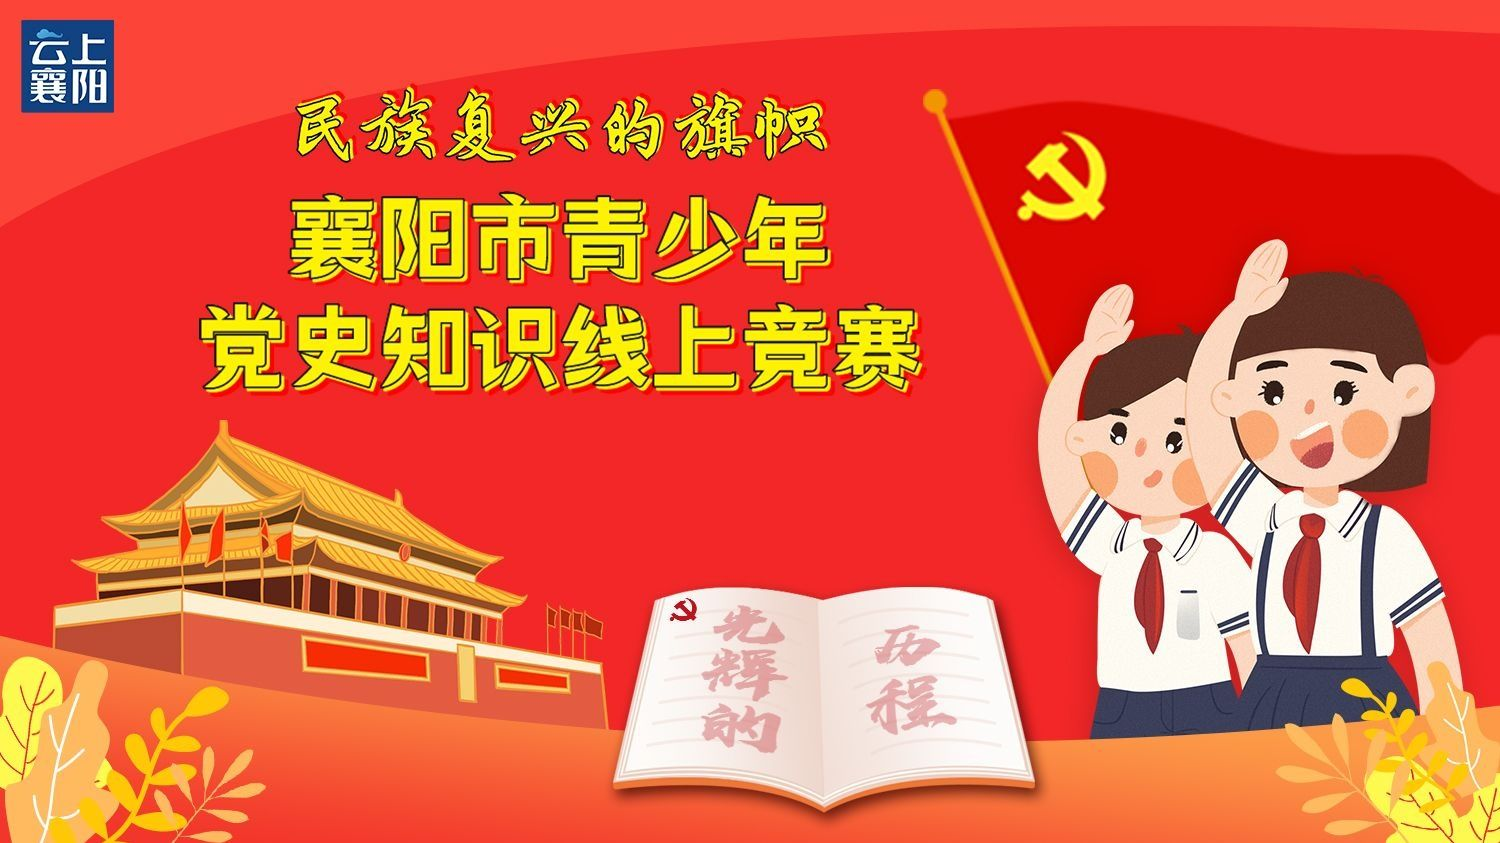 【民族复兴的旗帜】襄阳市青少年党史知识线上竞赛